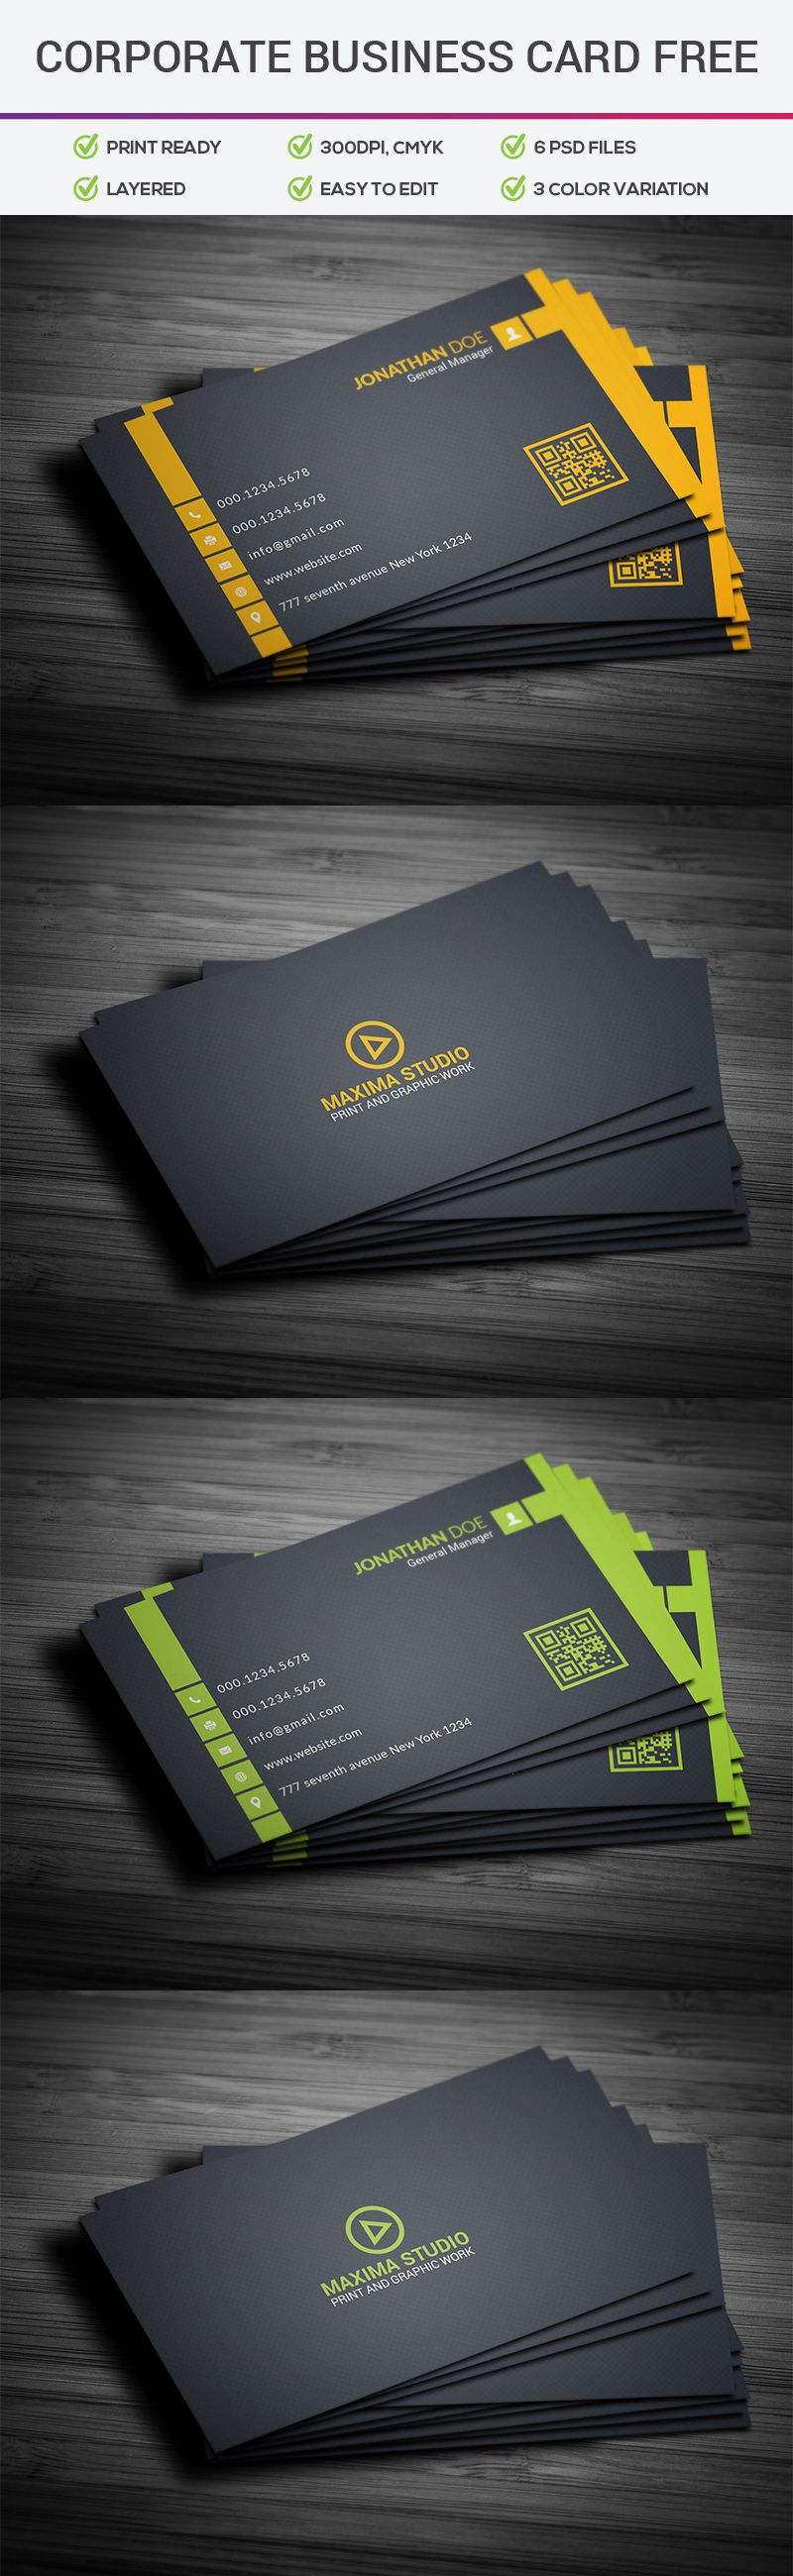 Free Corporate Business Card Template Free Business Cards Free Business Card Design Corporate Business Card